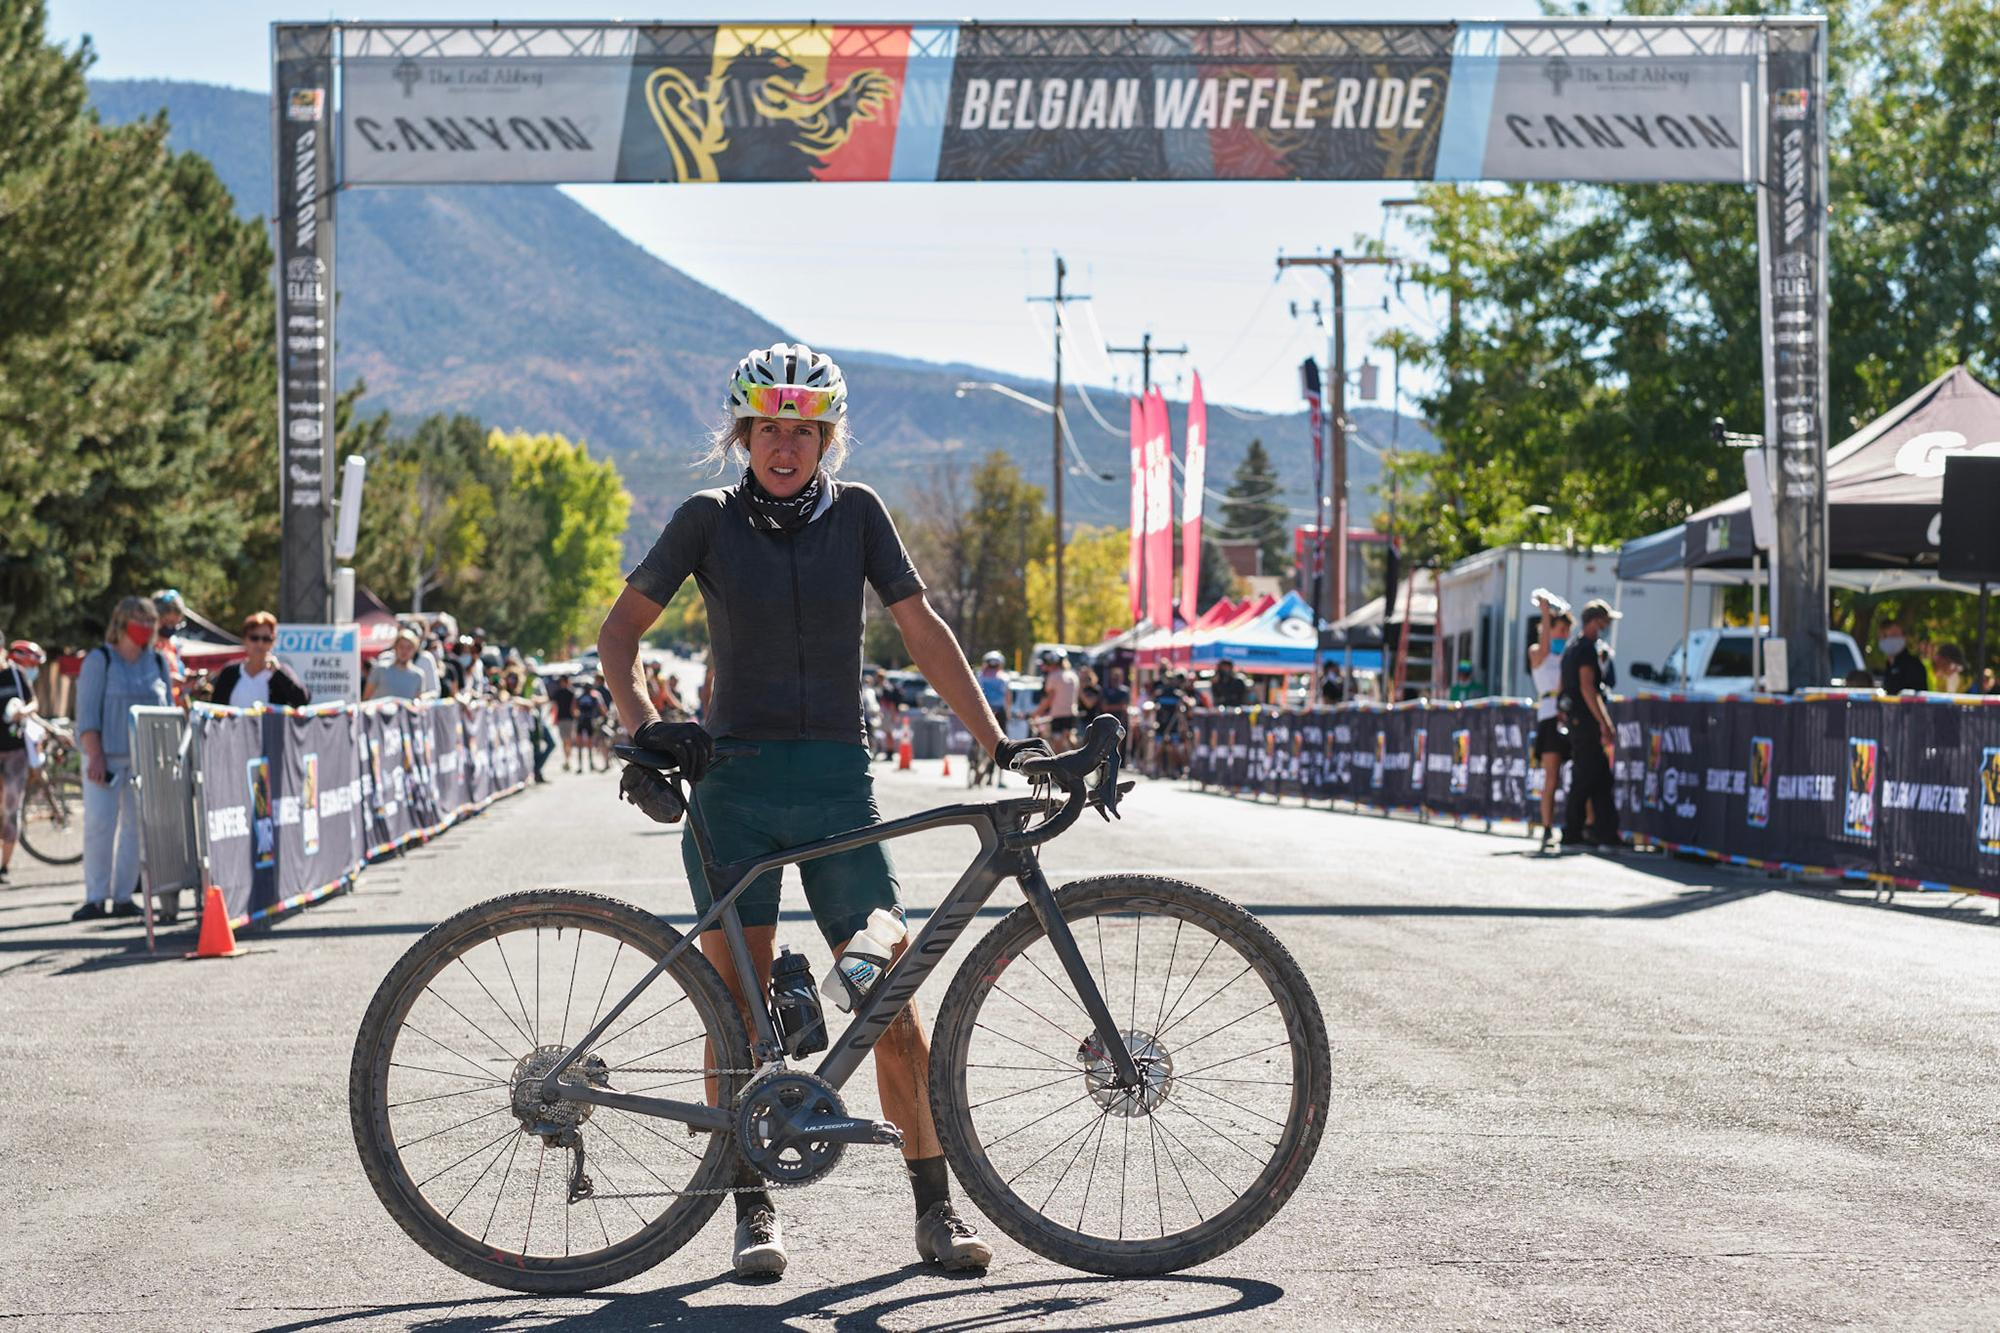 Finish line photo at the 2020 BWR in Cedar City.